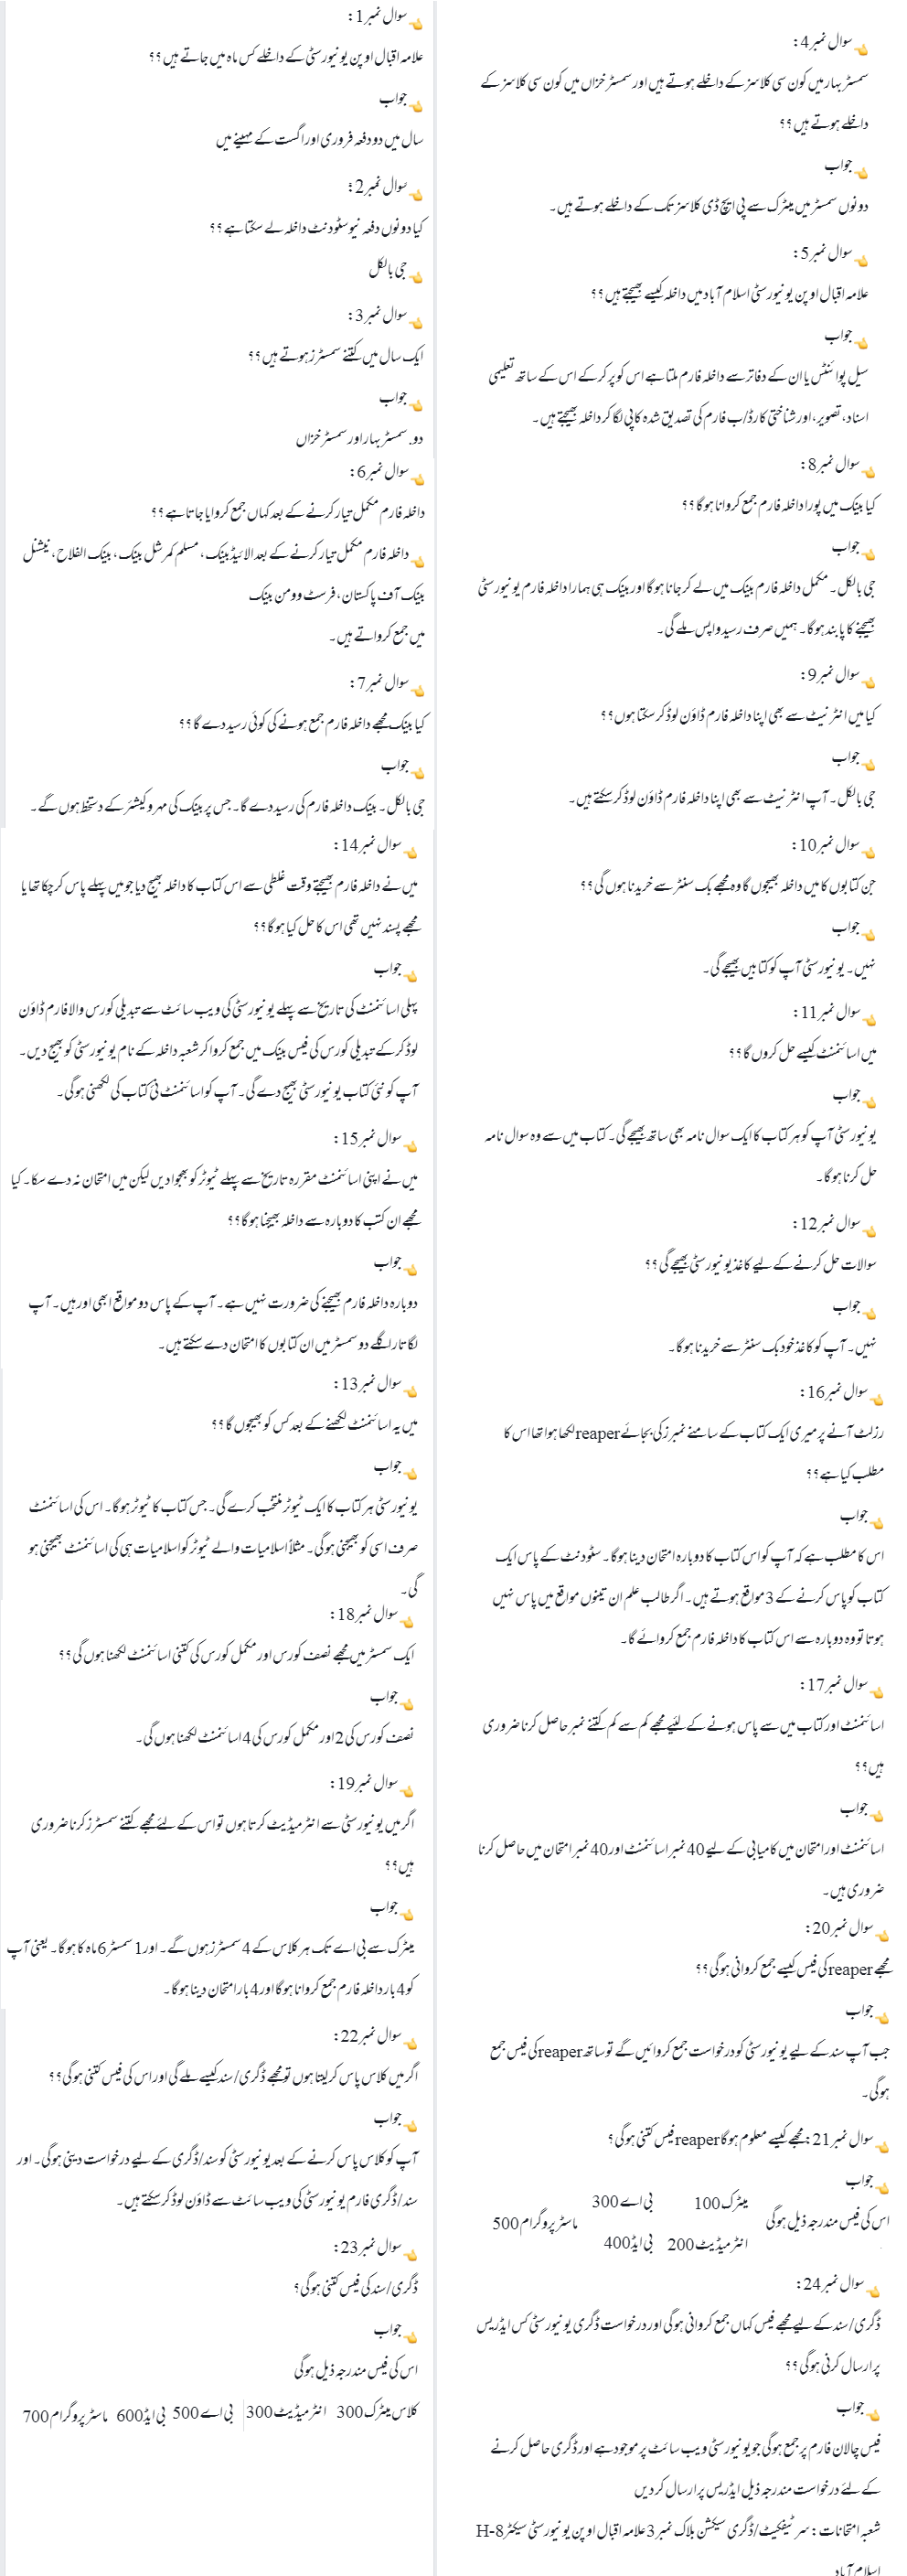 aiou question and answers